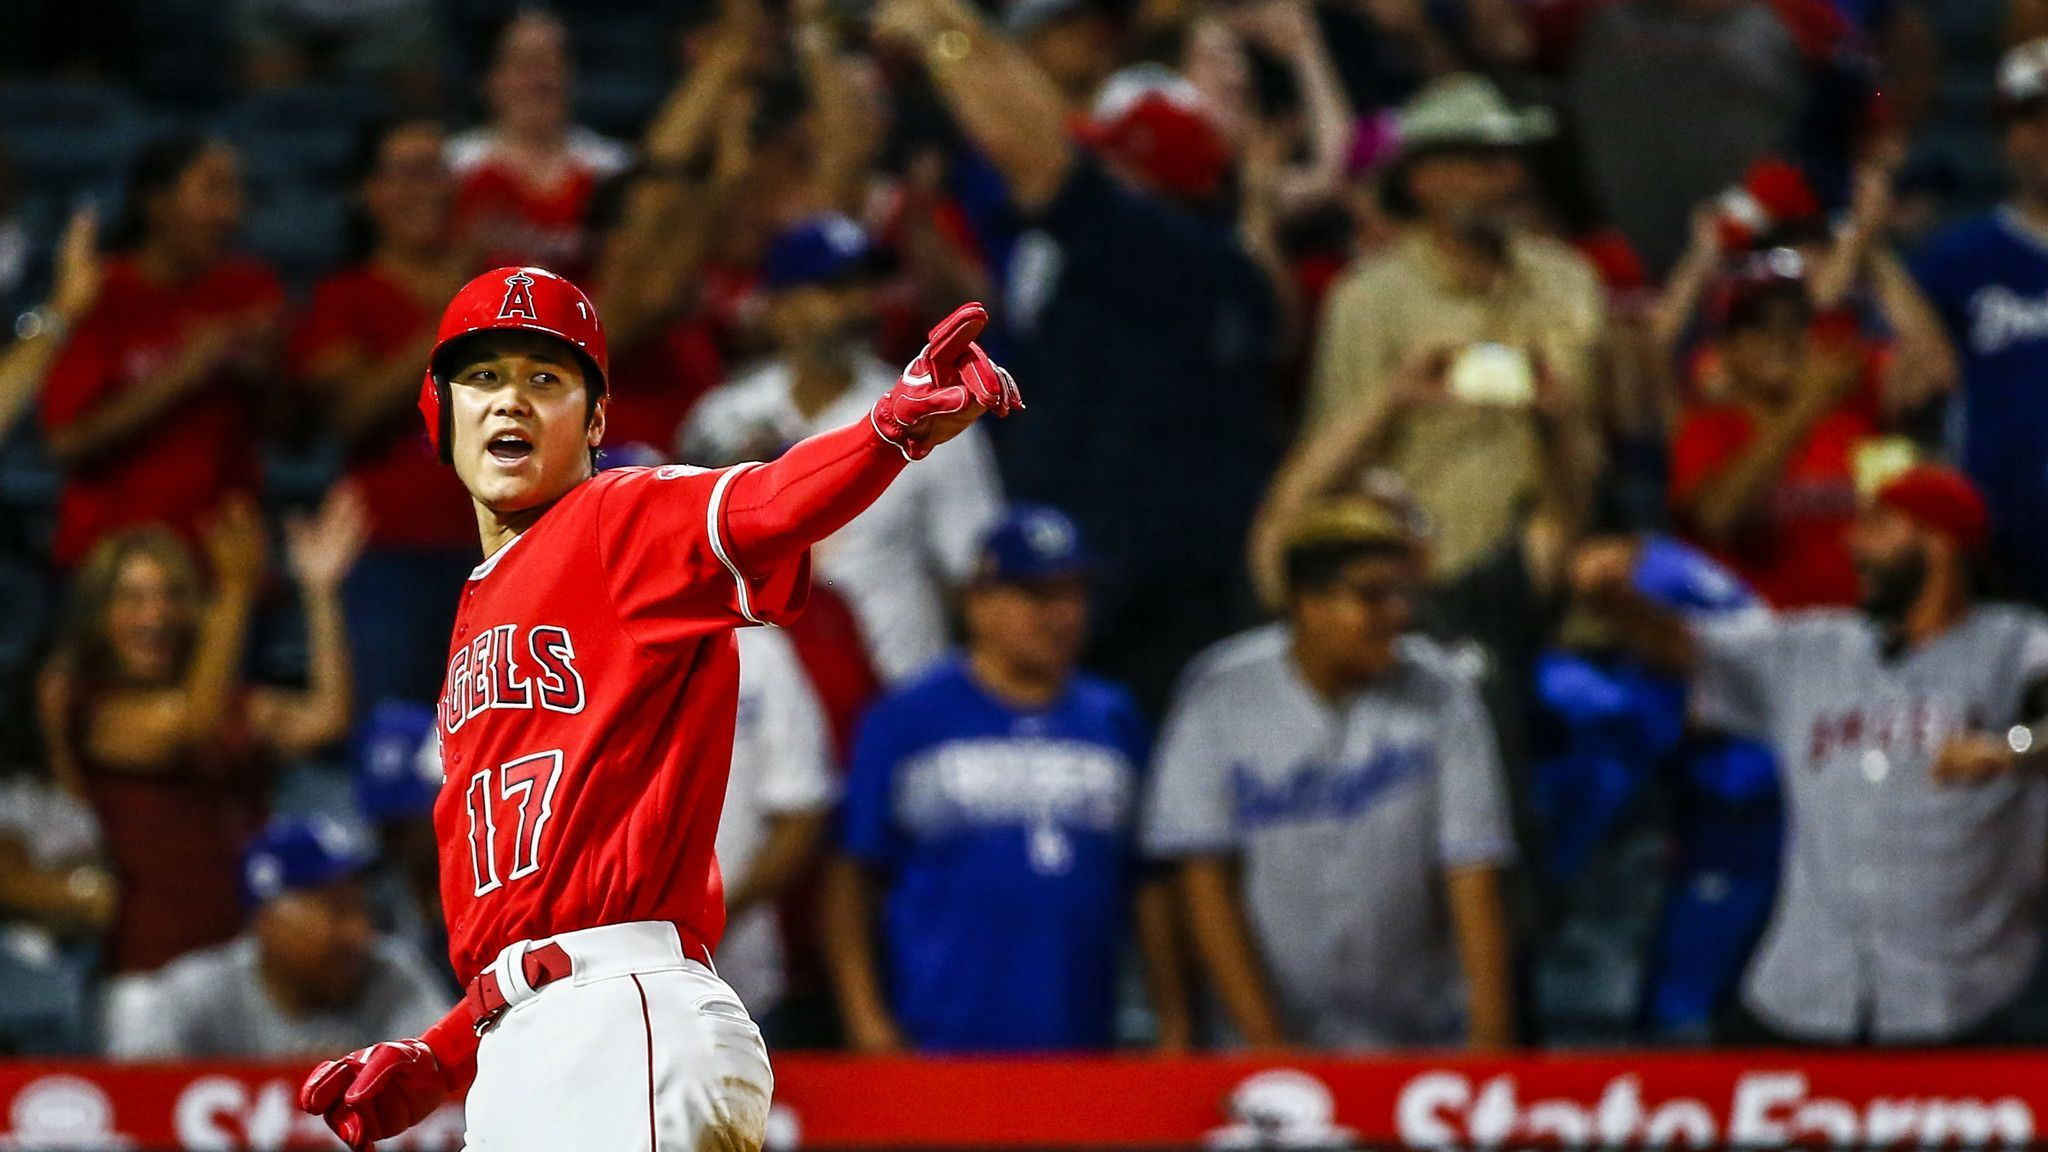 Angels rally in ninth inning in 3-2 victory over Dodgers